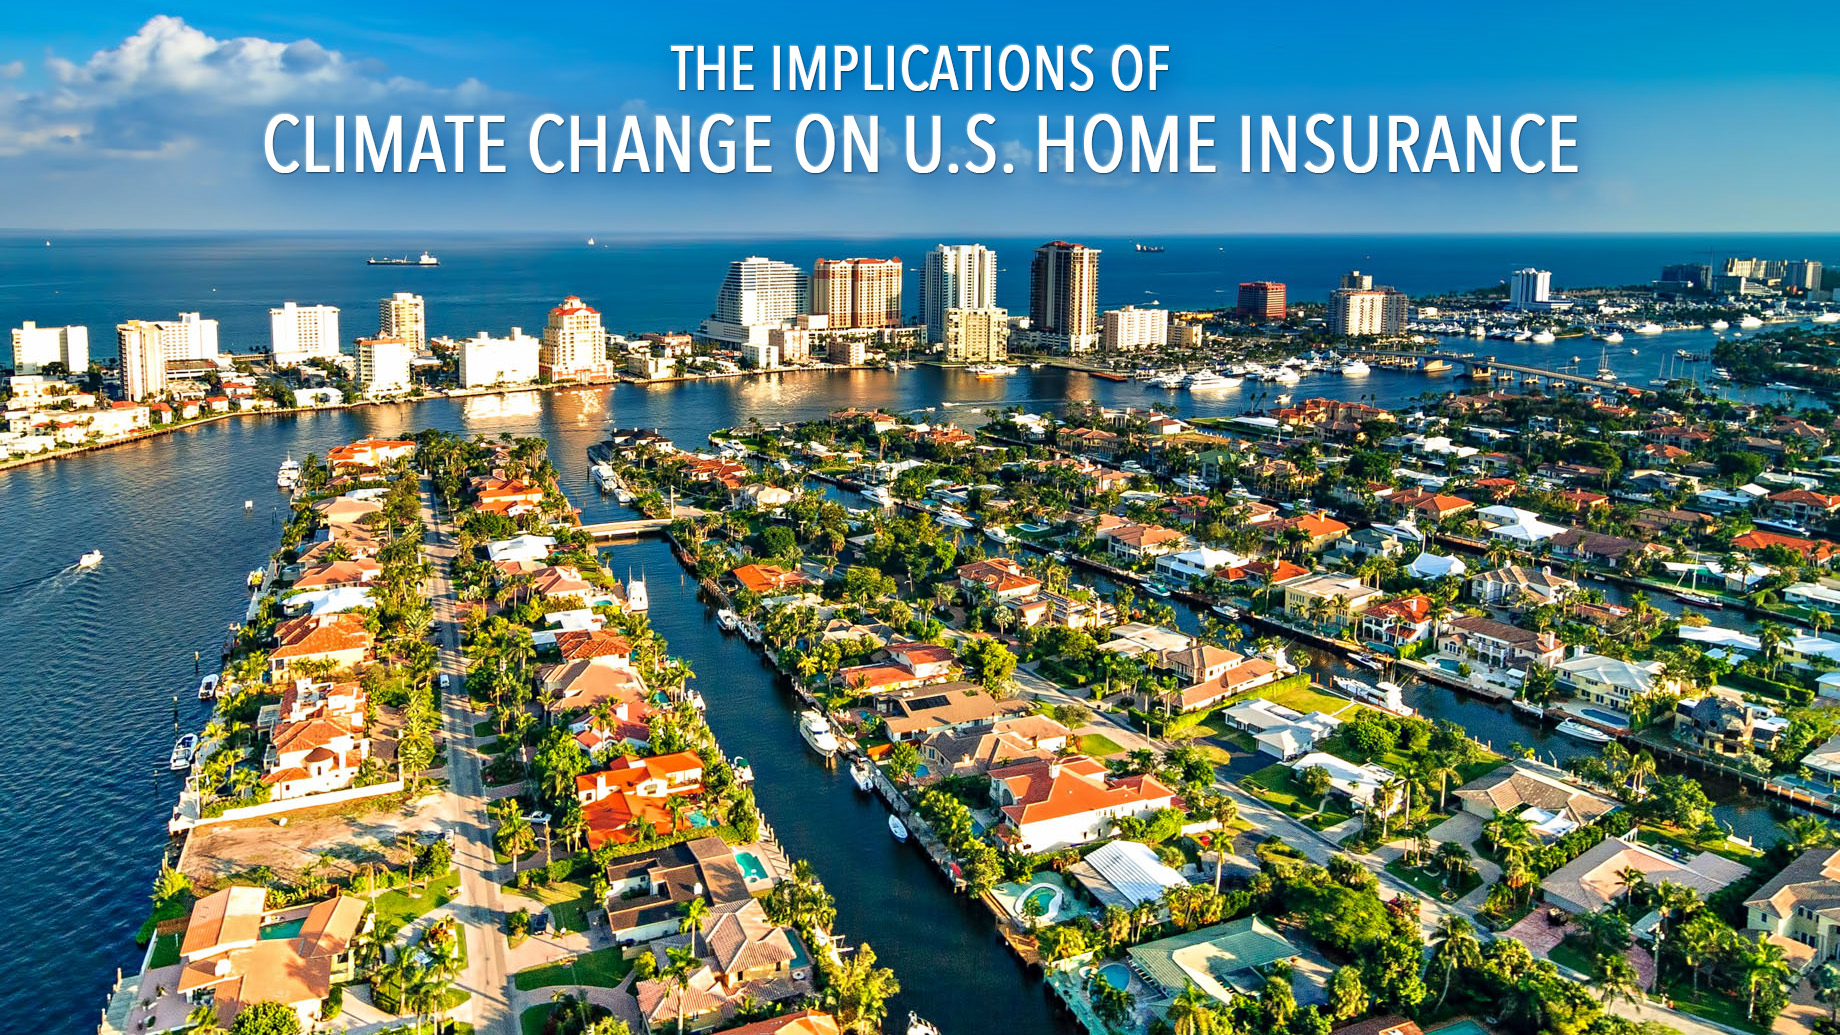 The Implications of Climate Change on U.S. Home Insurance